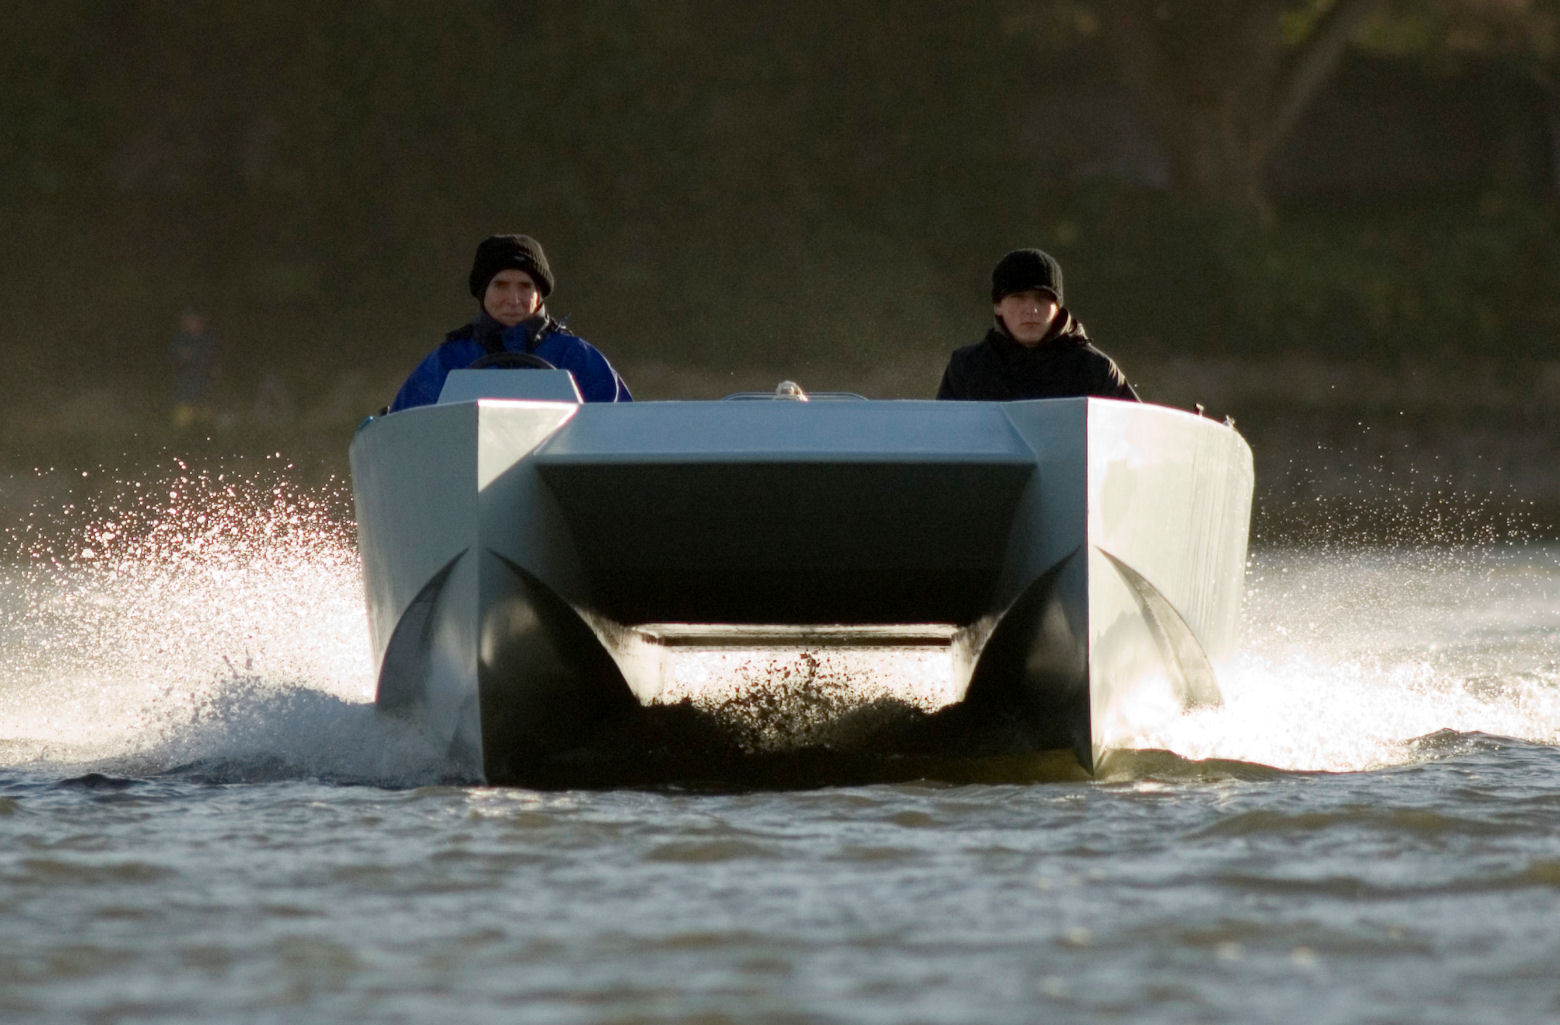 Don't Spend Your Money on Catamaran Boat Plans